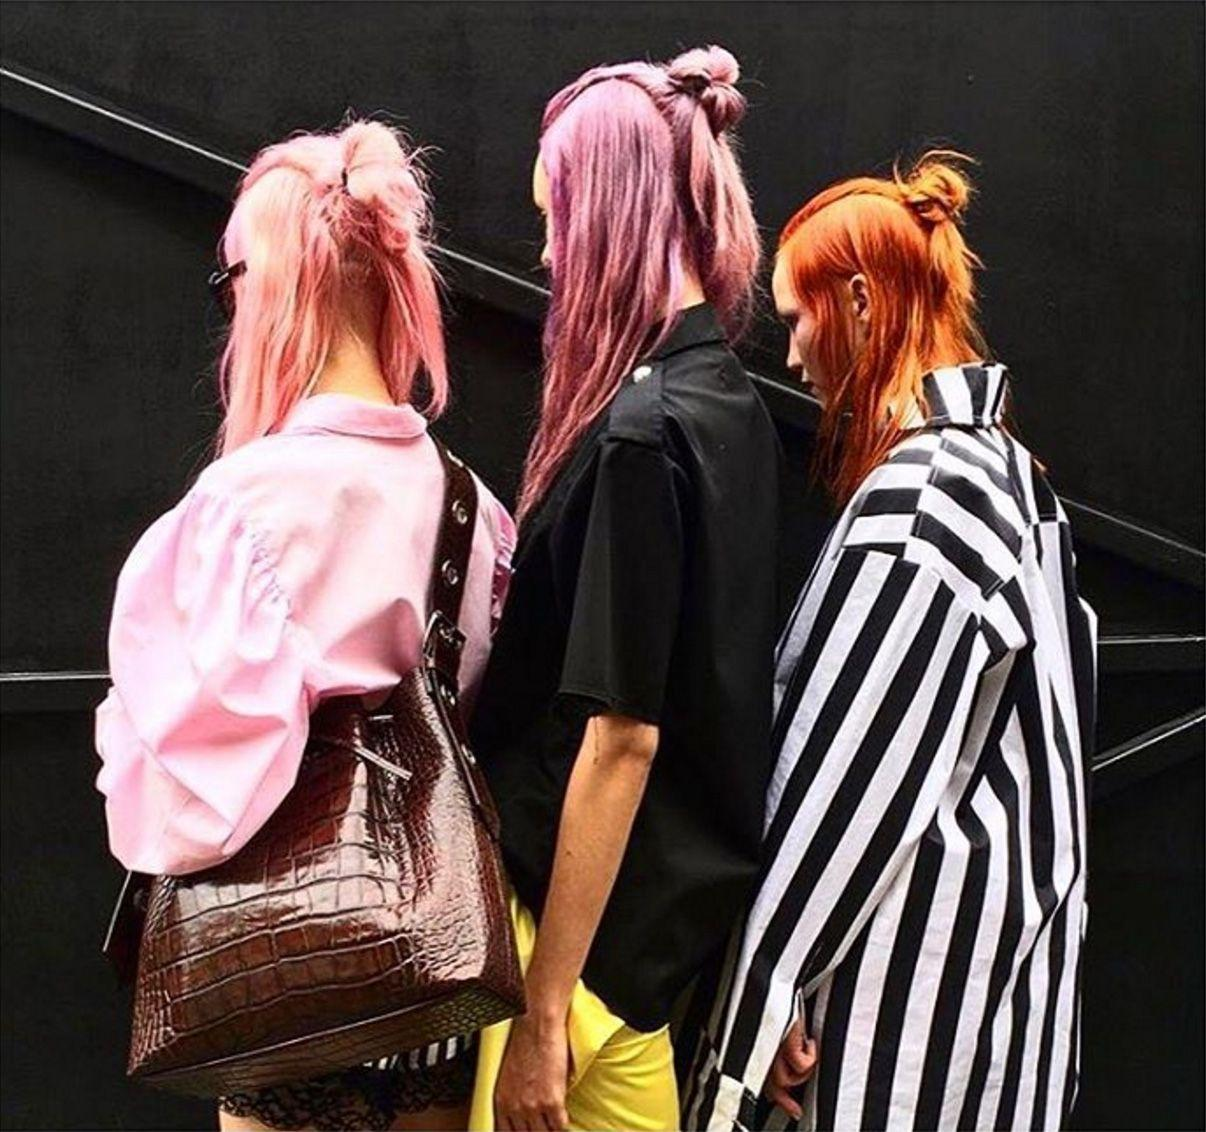 """<p><strong>The Multi-coloured Hun (half-bun)</strong></p> <p>Our favourite hair look at the SS17 shows had to be the multi-coloured locks at Marques' Almeida on the last day of LFW, created by super stylist <a href=""""https://www.instagram.com/duffy_duffy/?hl=en"""" rel=""""nofollow noopener"""" target=""""_blank"""" data-ylk=""""slk:Duffy"""" class=""""link rapid-noclick-resp"""">Duffy</a>. Even if you don't have the vivd peach or pink hair yourself, these half-up, half-down scruffy buns are the epitome of undone elegance.</p> <span class=""""copyright"""">Photo: via @duffy_duffy.</span>"""